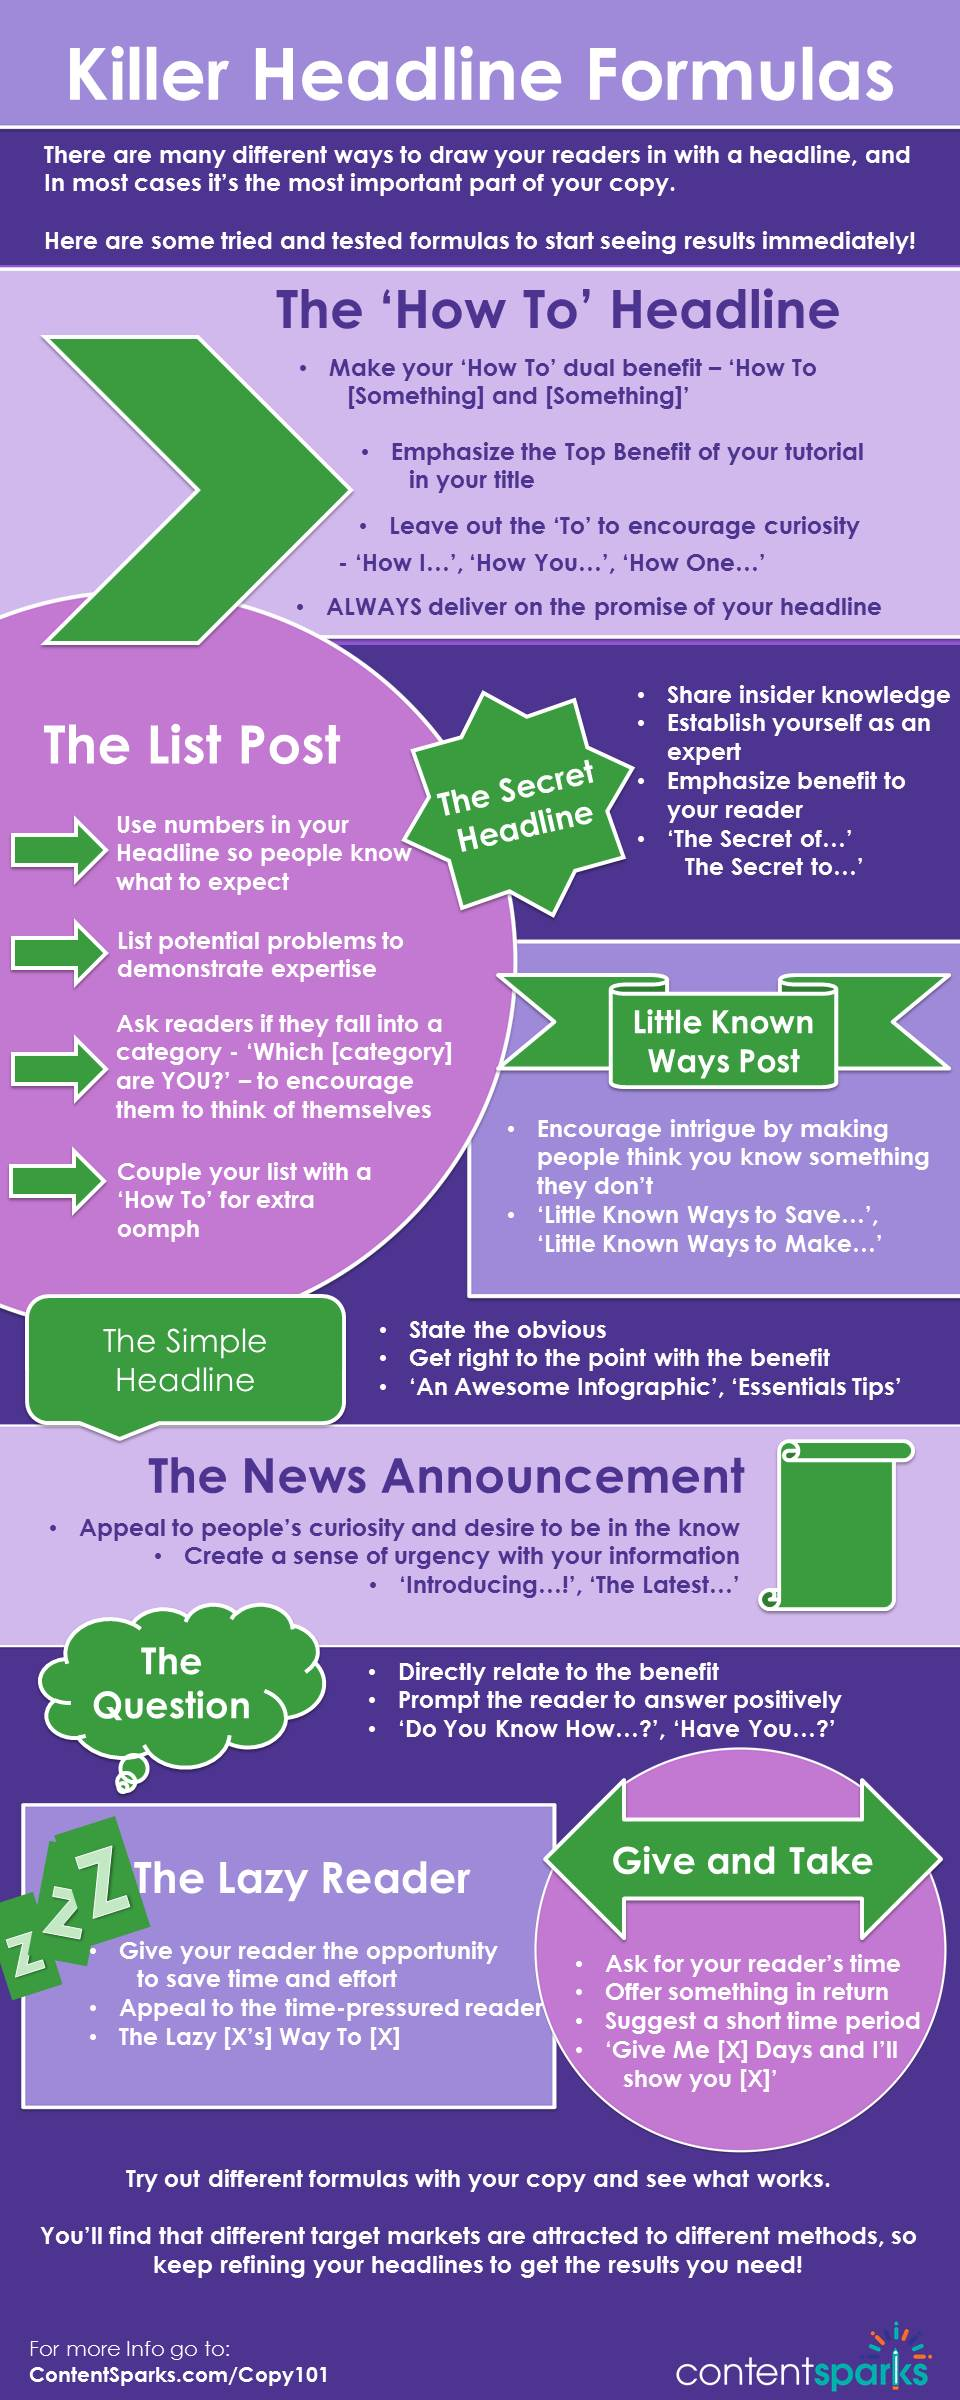 Tips and Templates for High-Converting Headlines